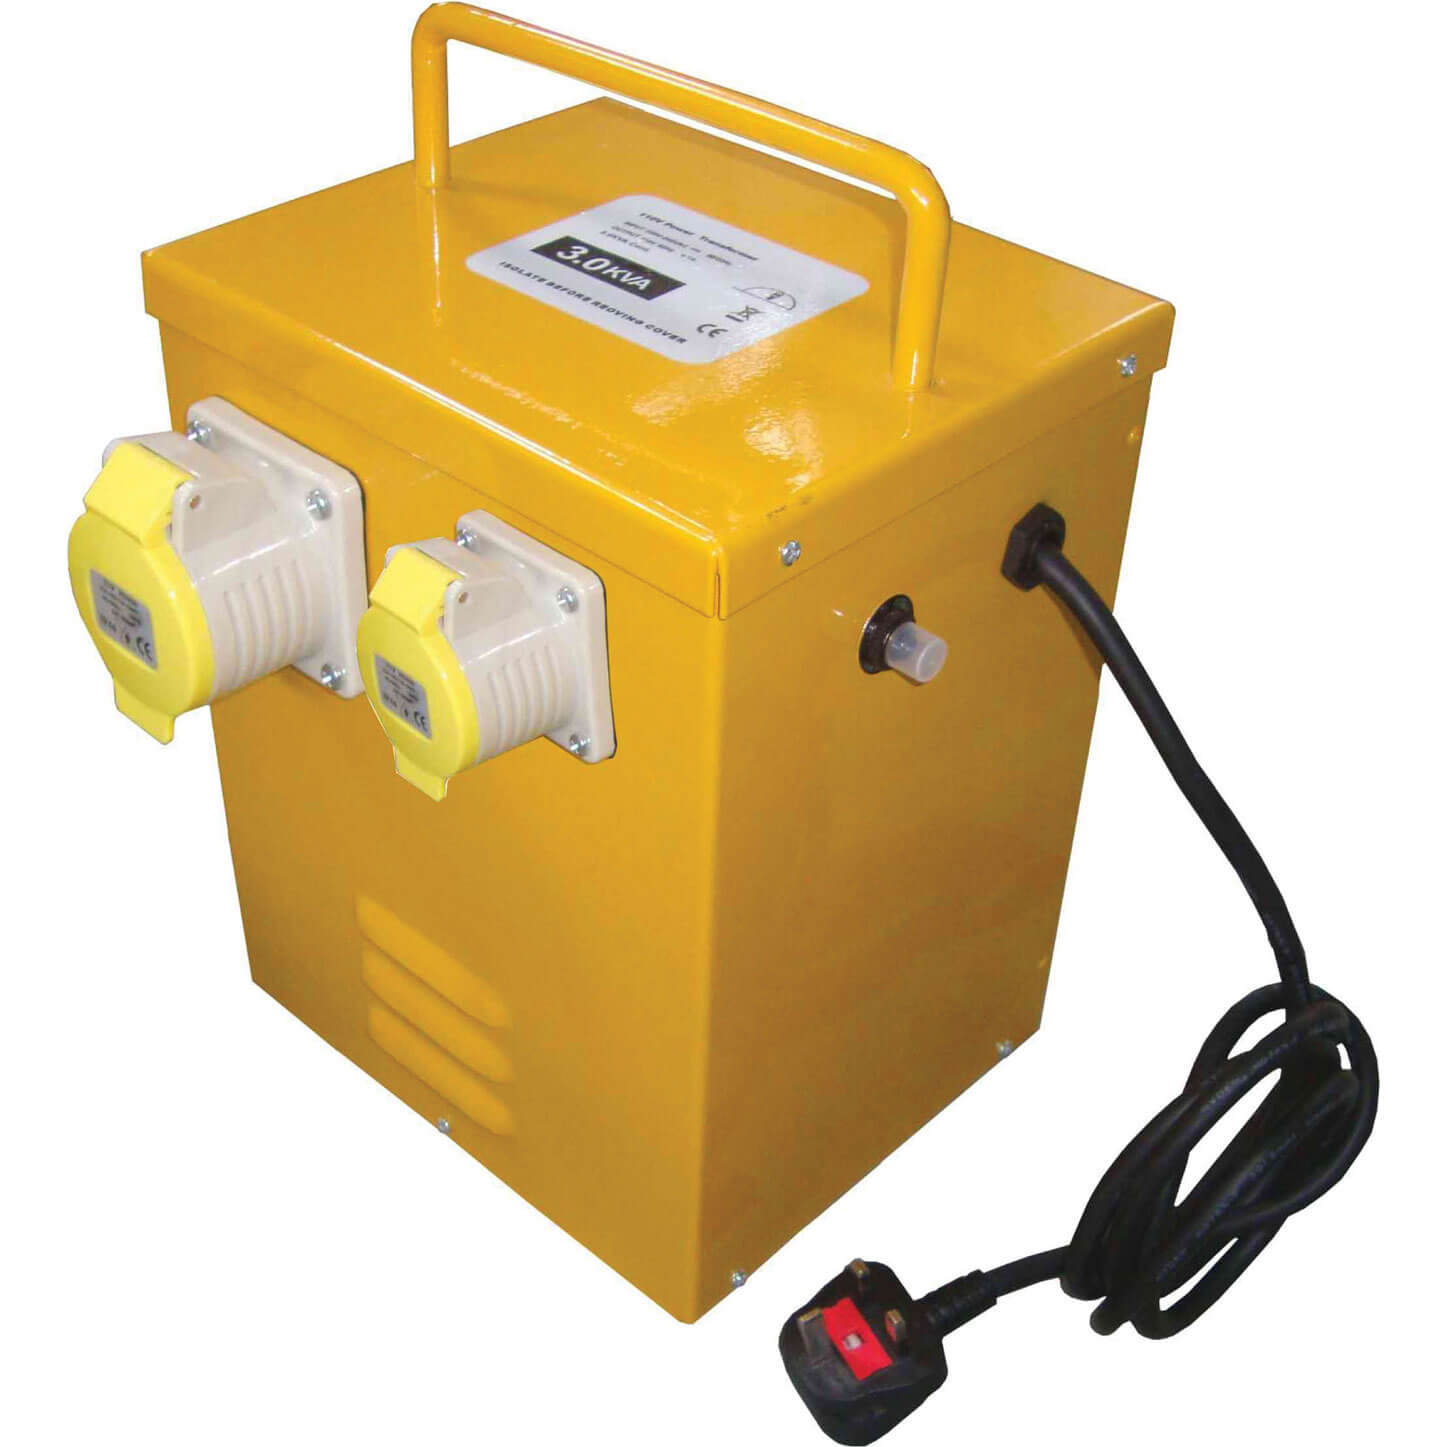 Image of Faithfull 110v Portable Continuous Rated Transformer 3Kva 240v